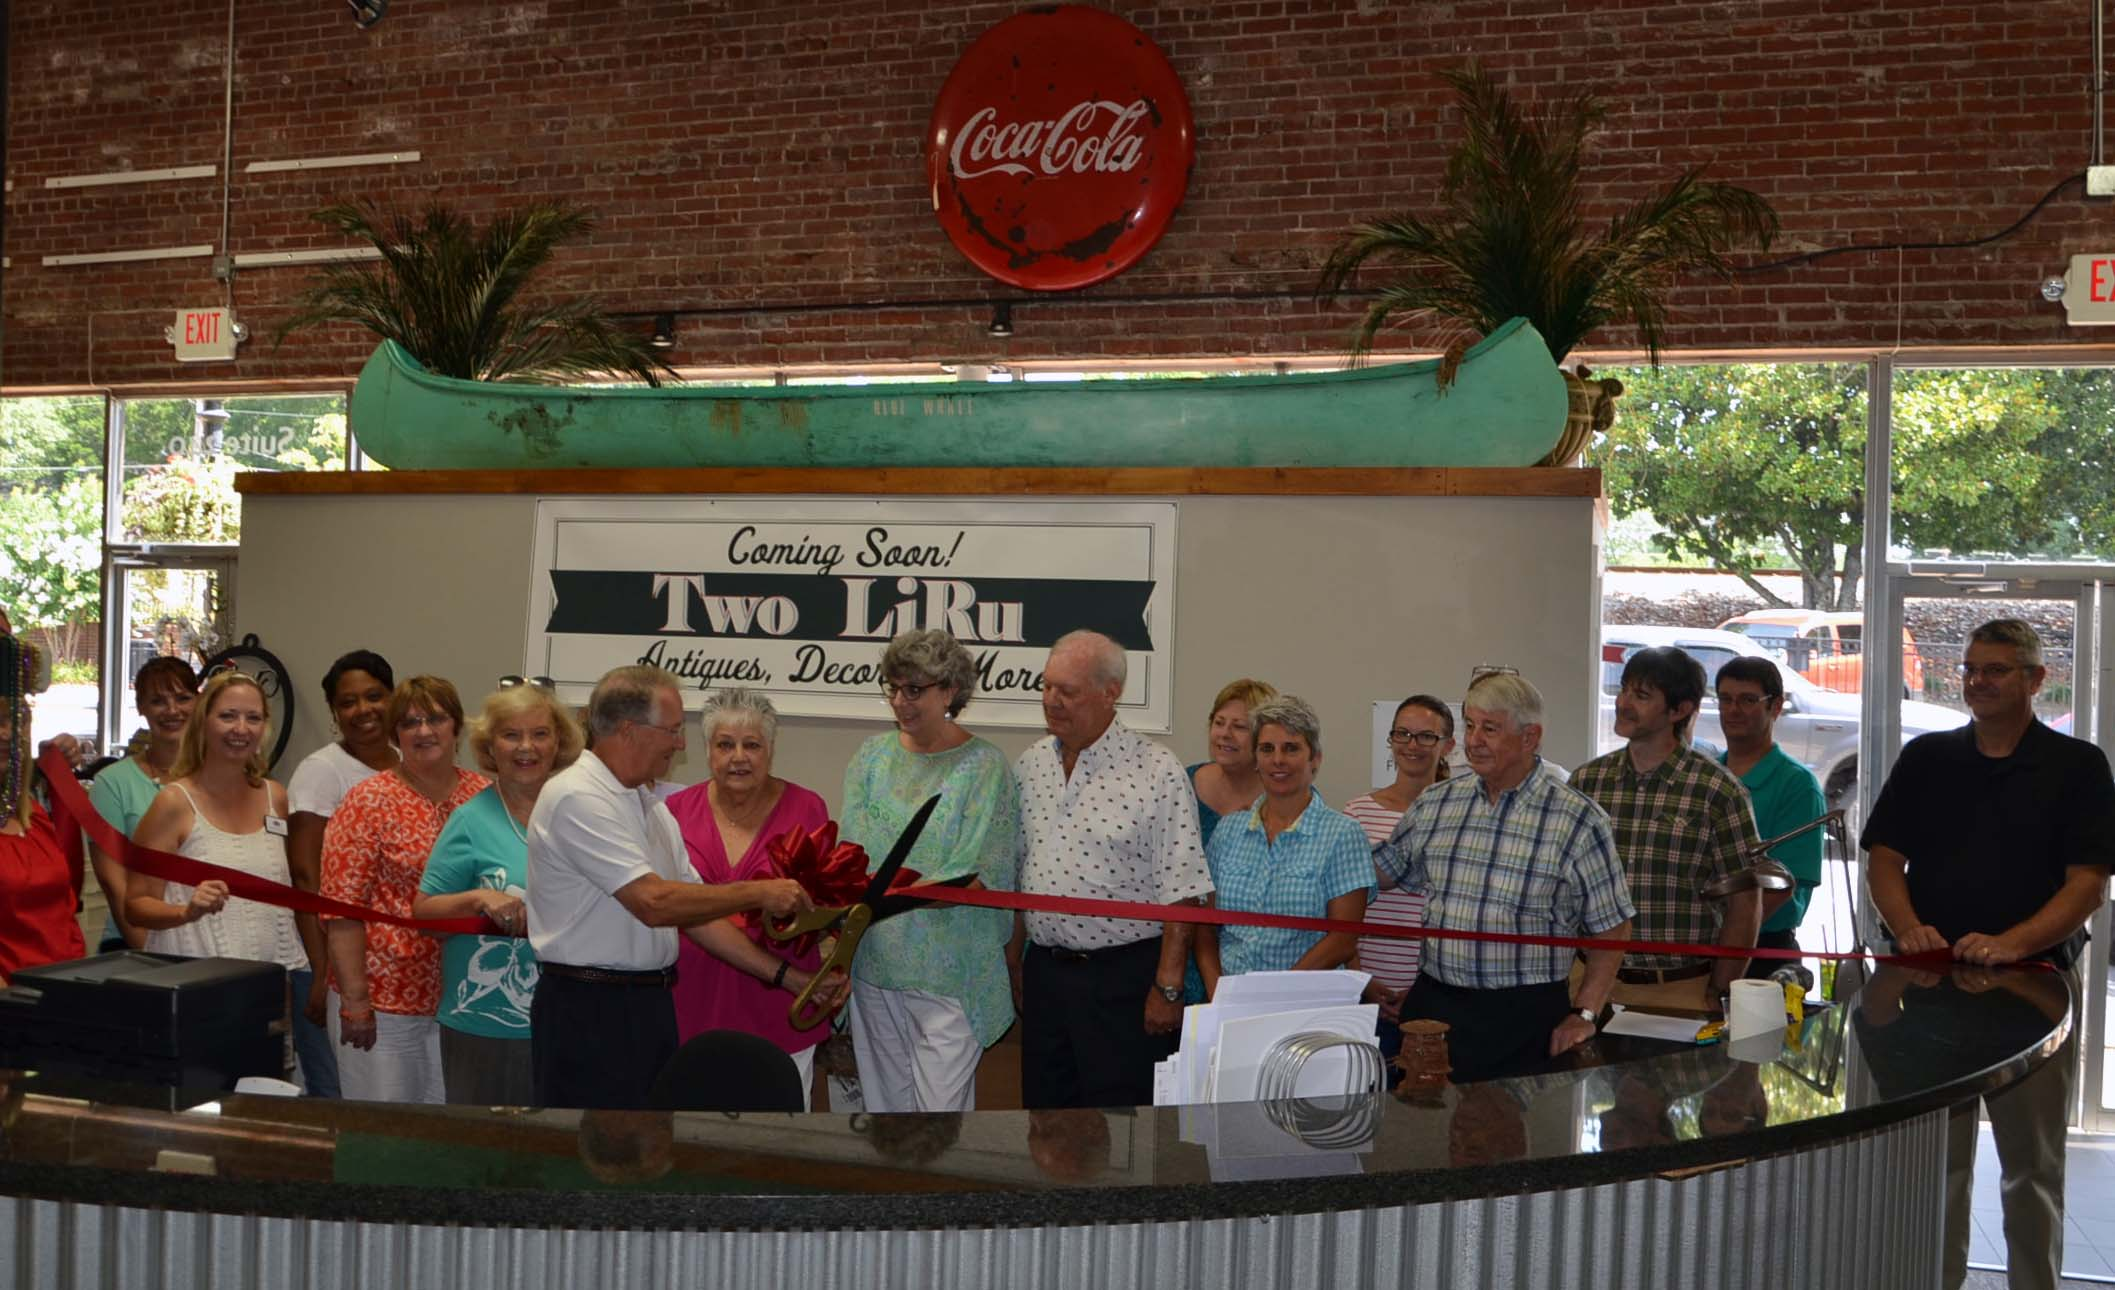 Ribbon Cutting for Two LiRu Antiques and Decor1